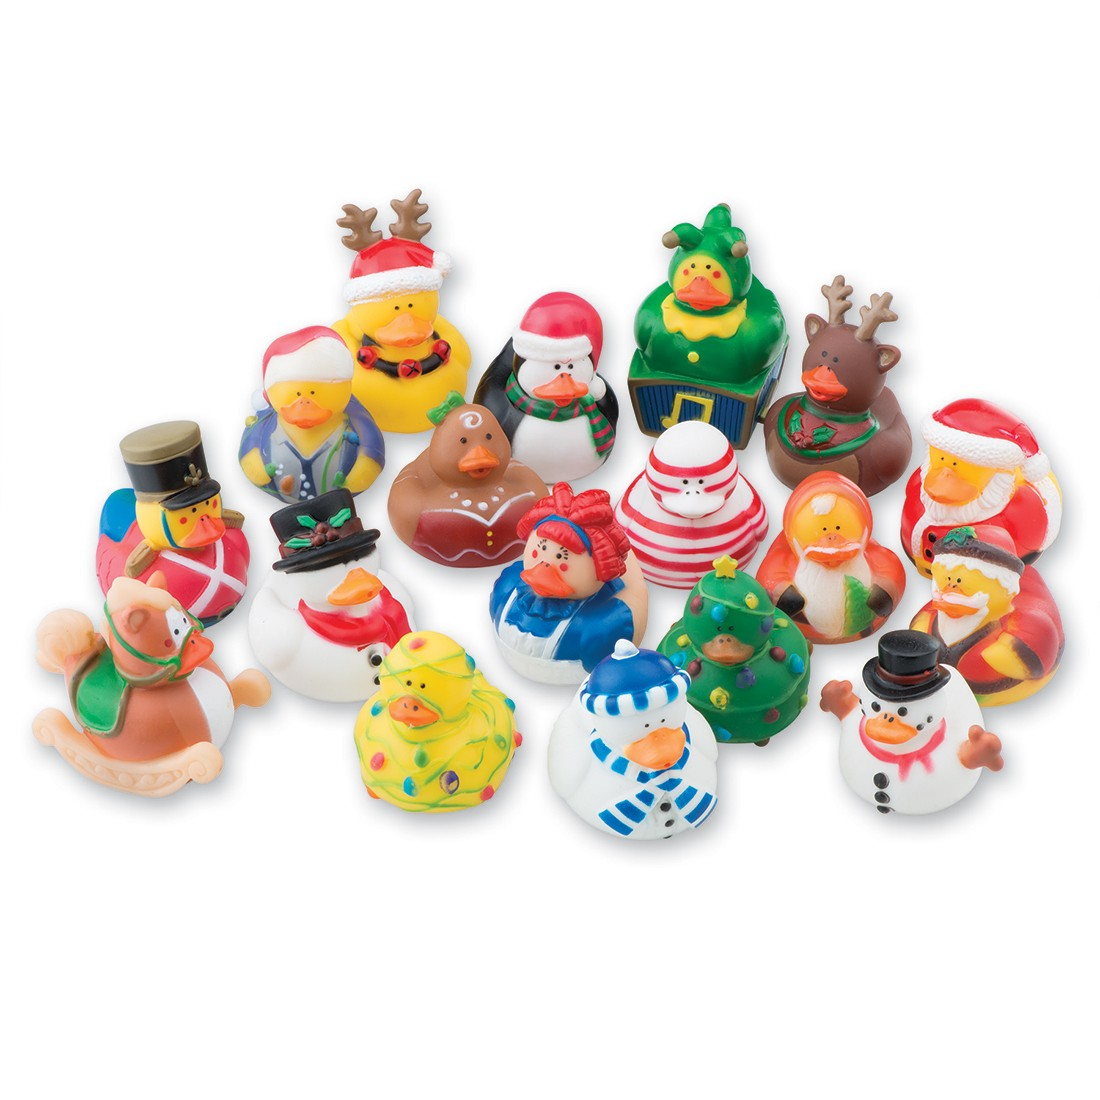 Christmas Rubber Duck Value Pack [image]